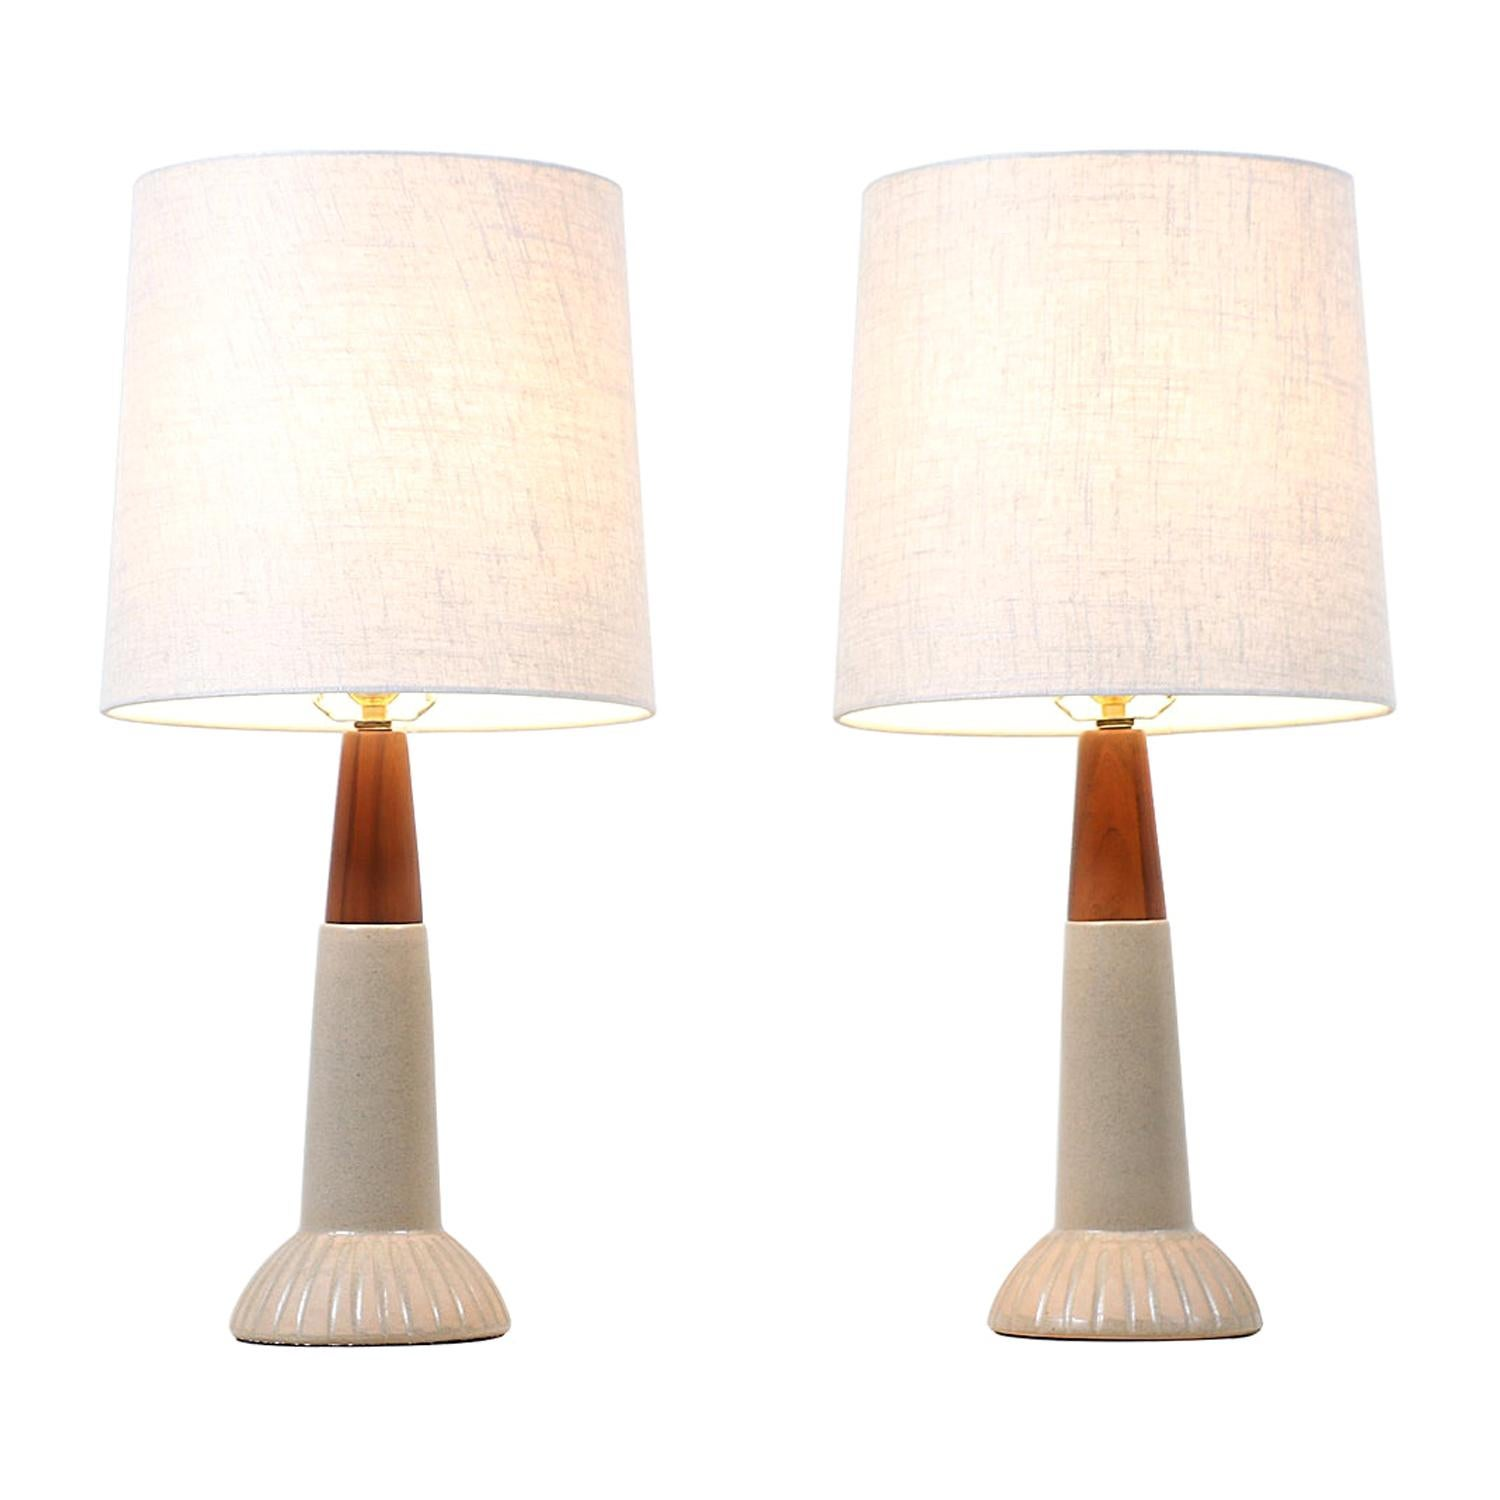 Jane & Gordon Martz Ceramic Table Lamps for Marshall Studios